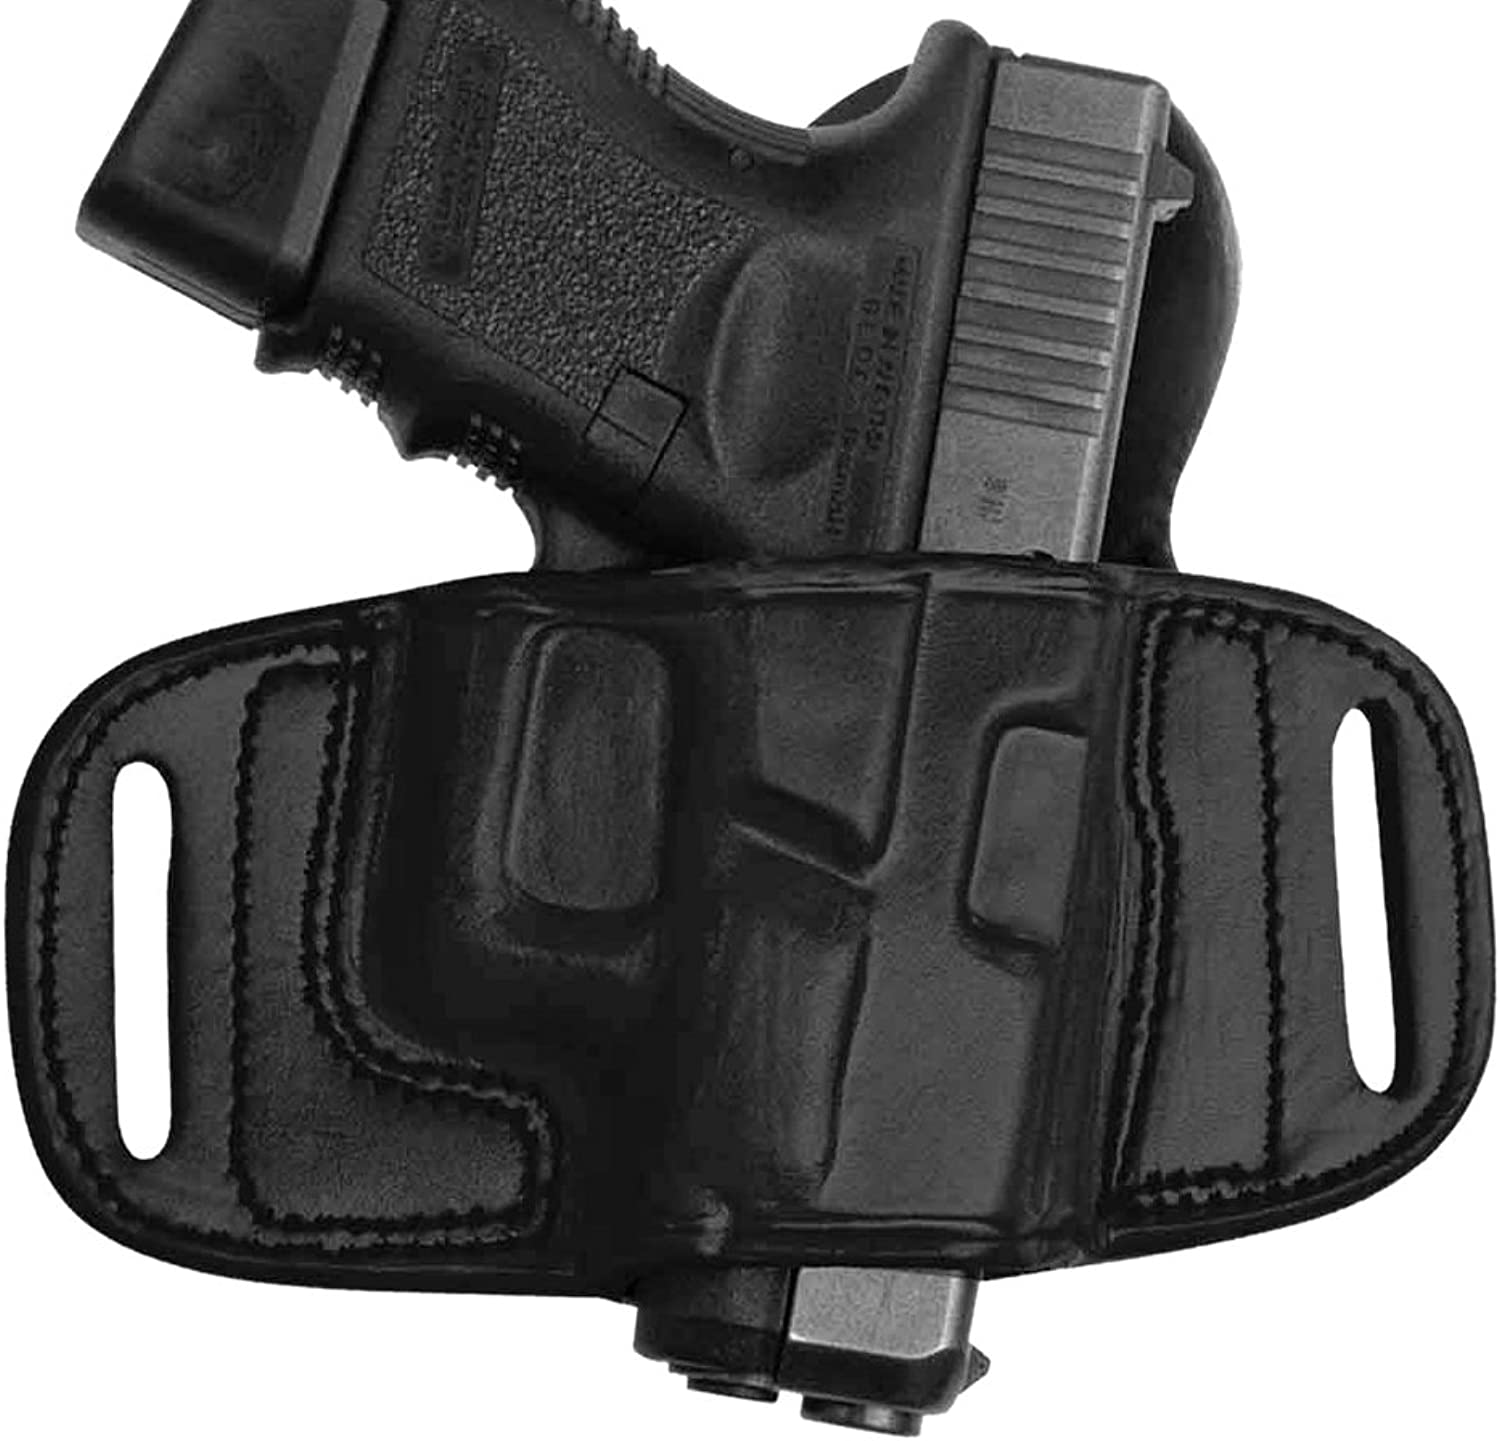 Tagua EP-BH2-500 HK 45 Auto Black Right Hand Extra Predection Quick Draw Belt Holster